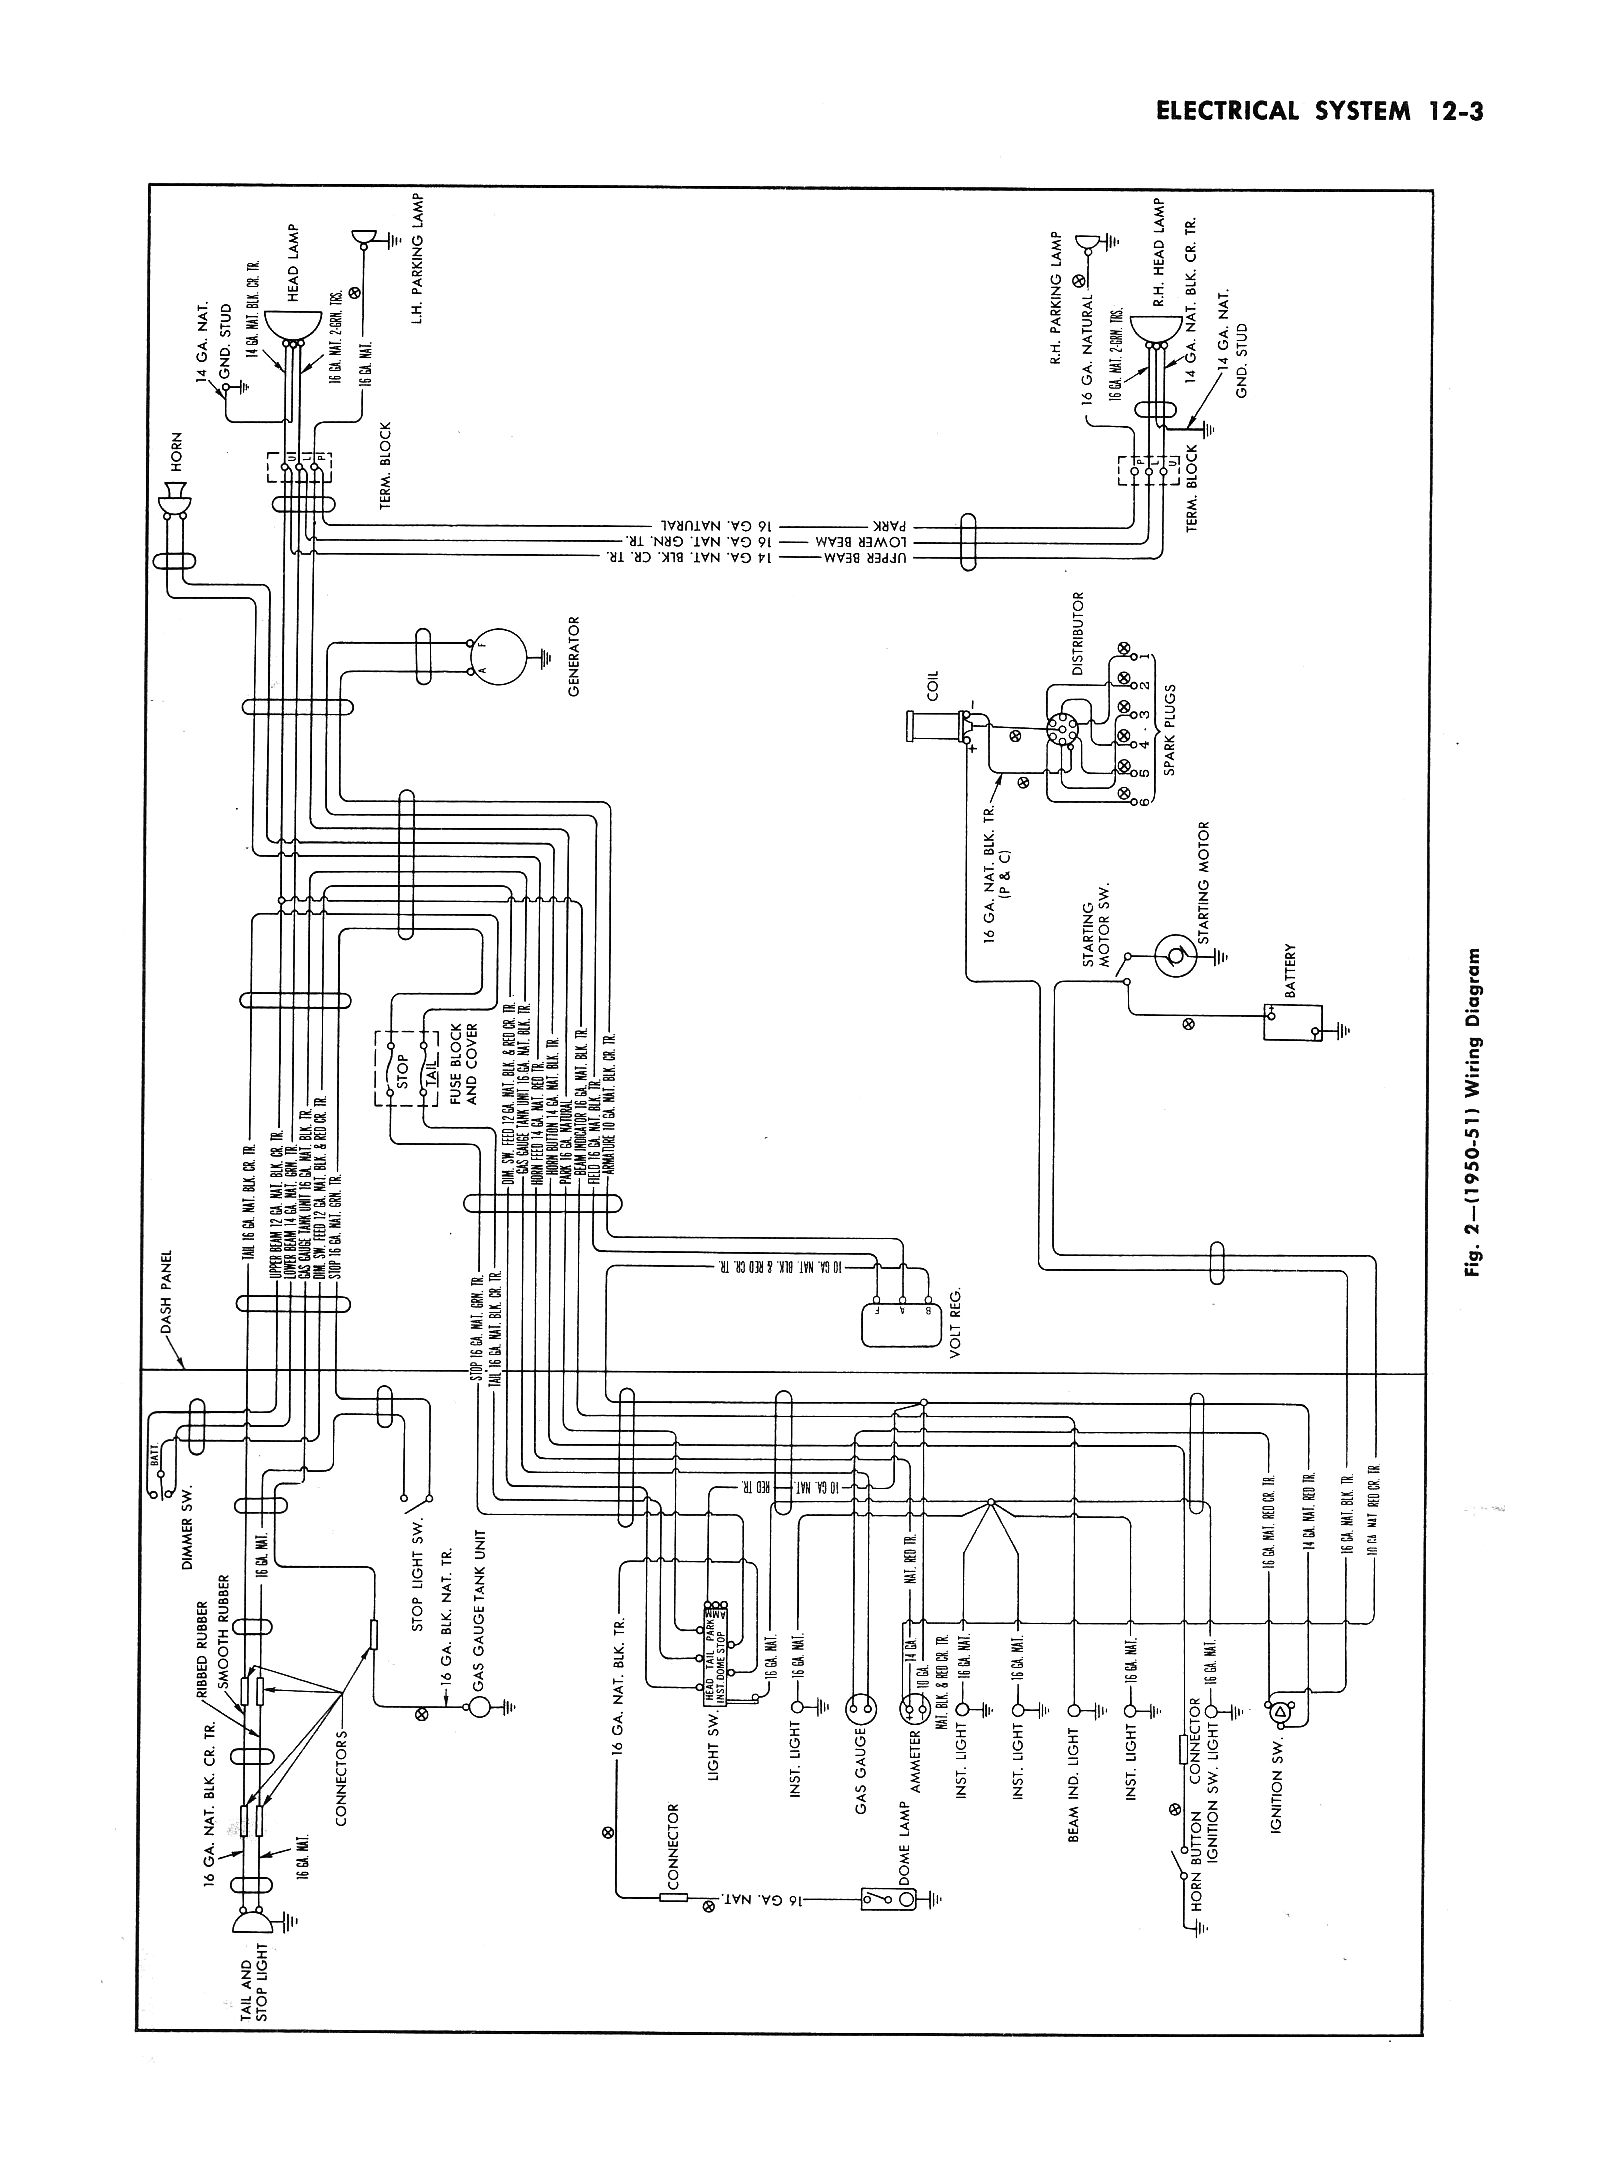 1952 chevy wiring diagram detailed schematics diagram rh antonartgallery com Ford Model A Wiring Diagram Model A Ignition Wiring Diagram